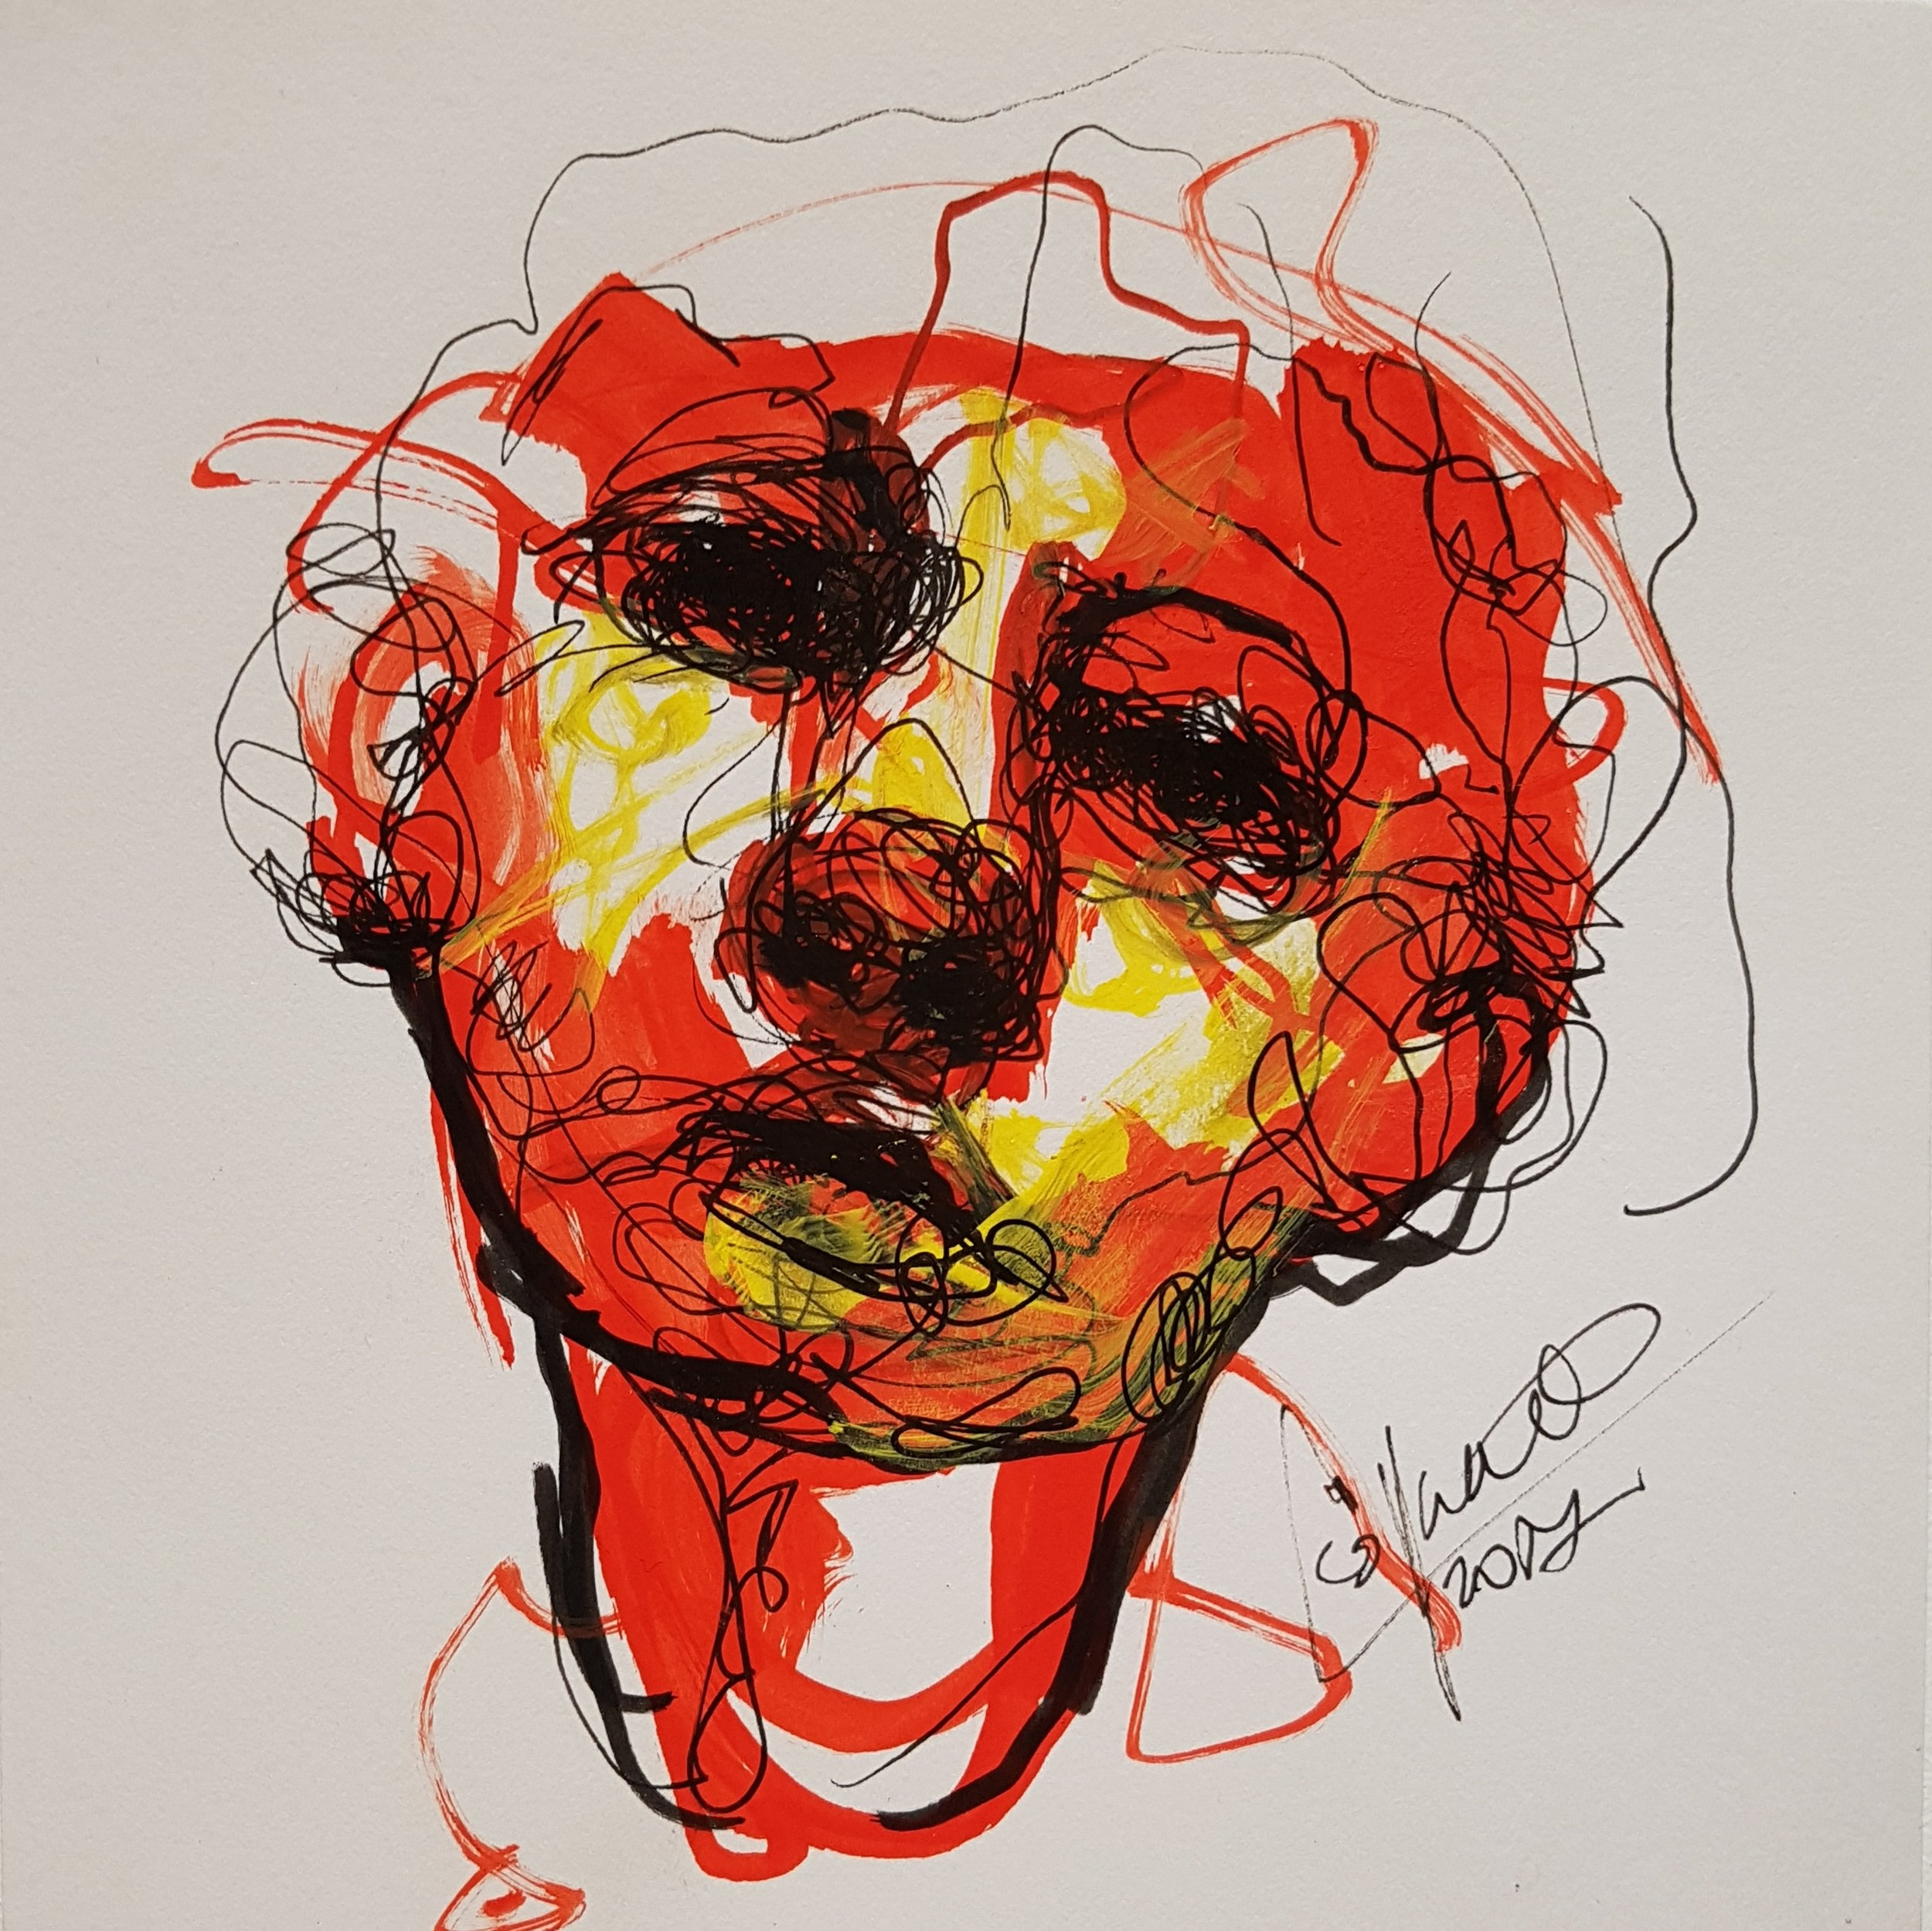 abstract sketch of face